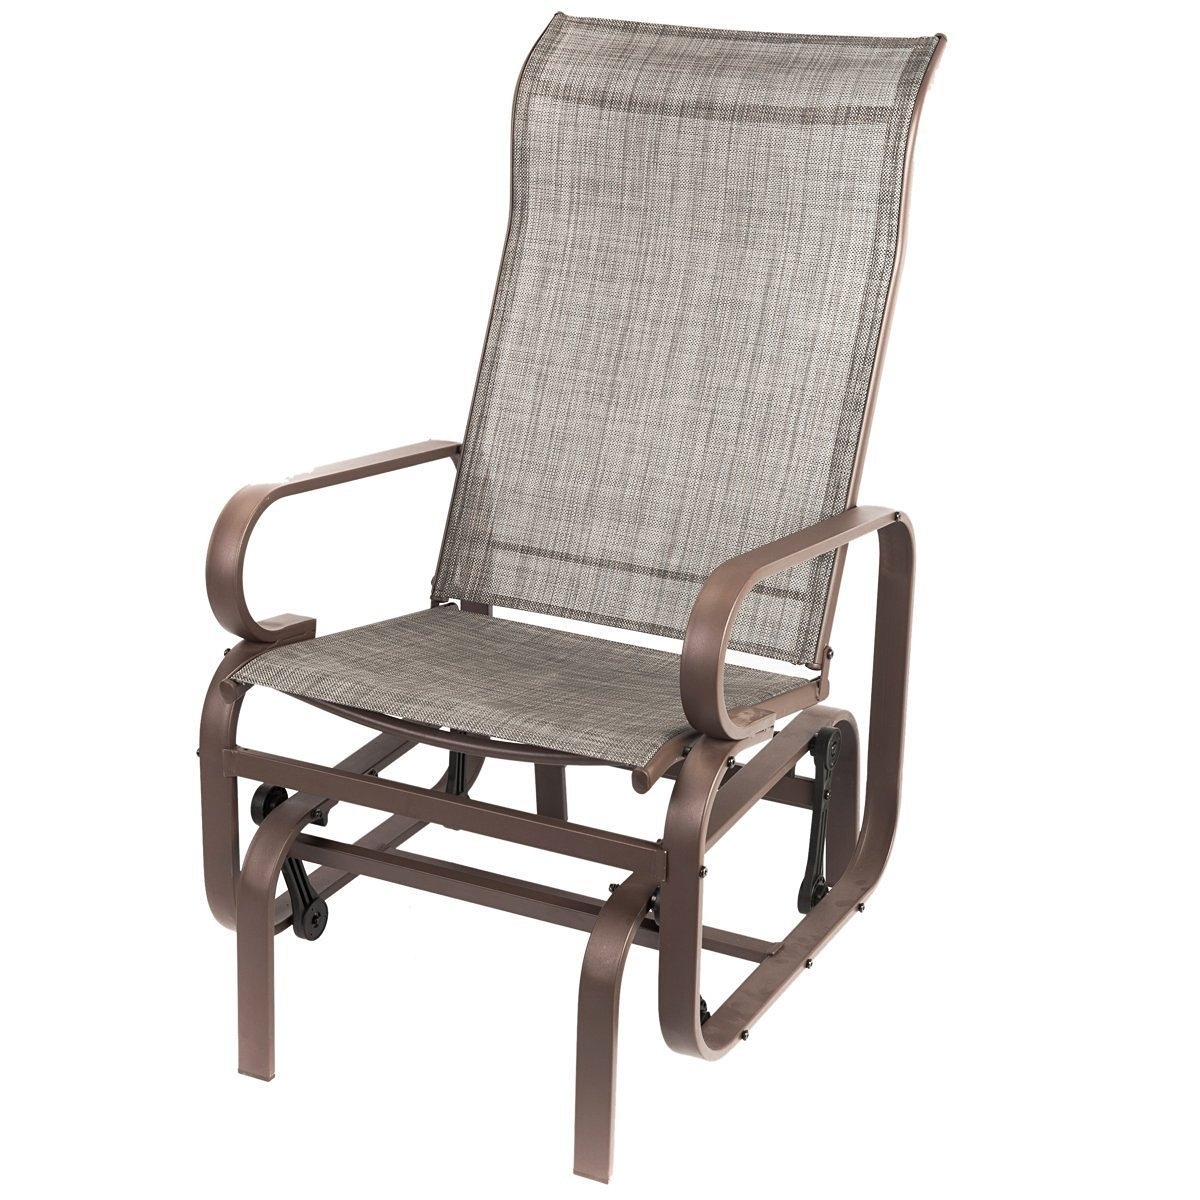 Naturefun Outdoor Patio Rocker Chair, Balcony Glider Rocking Lounge In Patio Rocking Chairs And Gliders (#11 of 15)